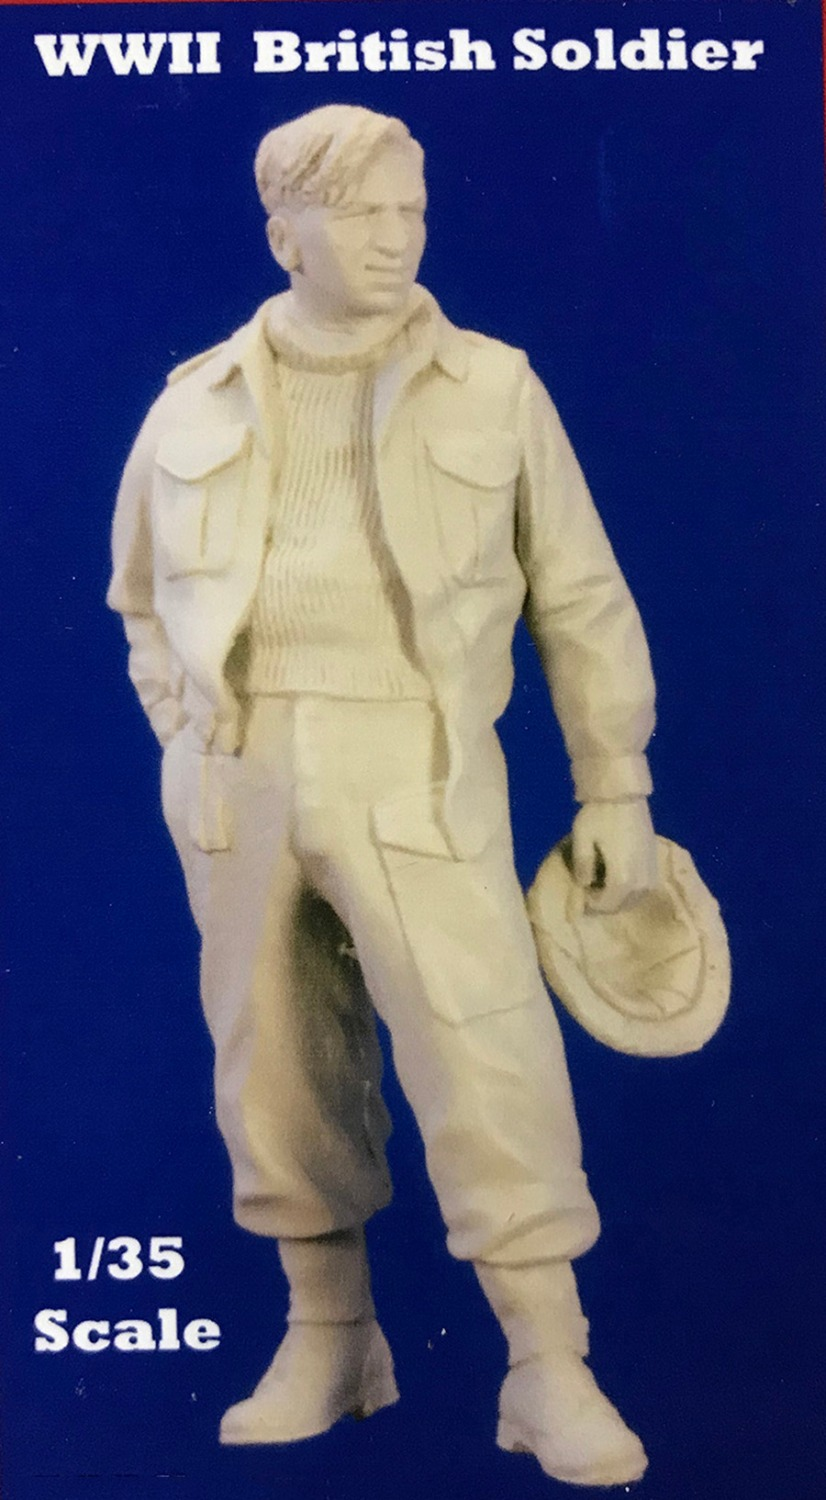 Assembly Unpainted Scale 1/35 british soldier standing WWII Historical toy Resin Model Miniature Kit